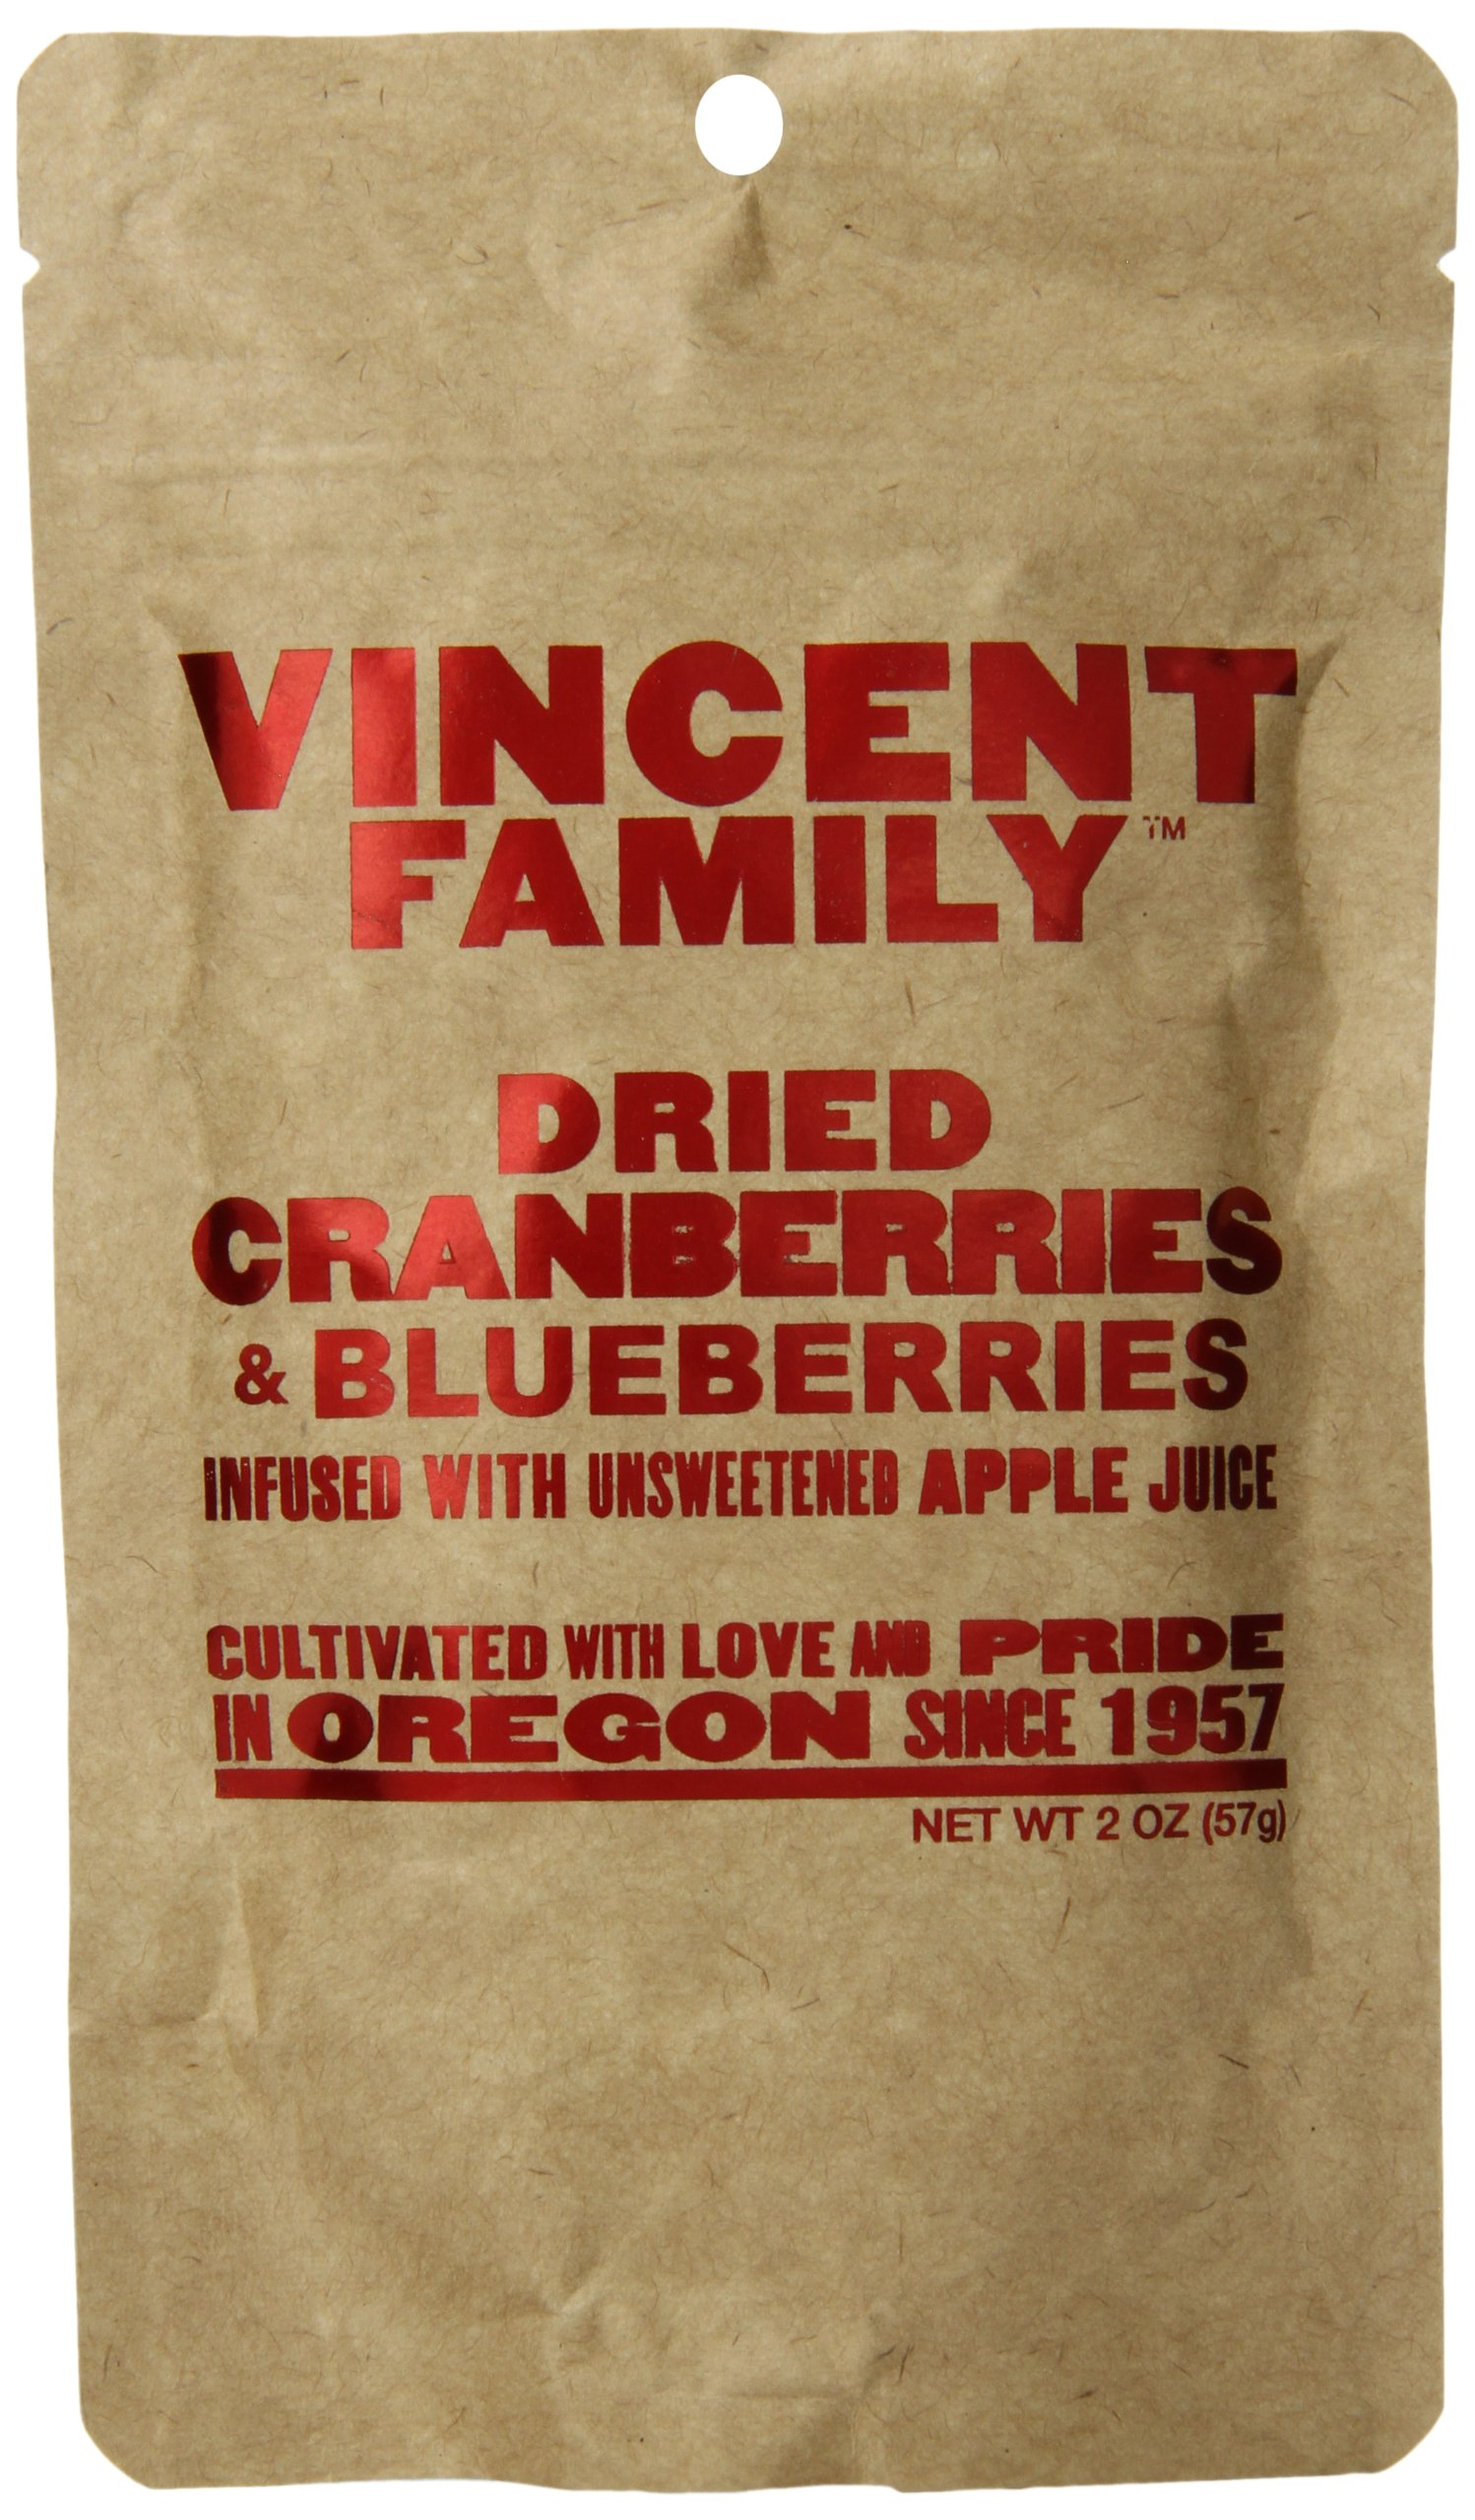 Vincent Family Dried Cranberries and Blueberries,2 Ounce